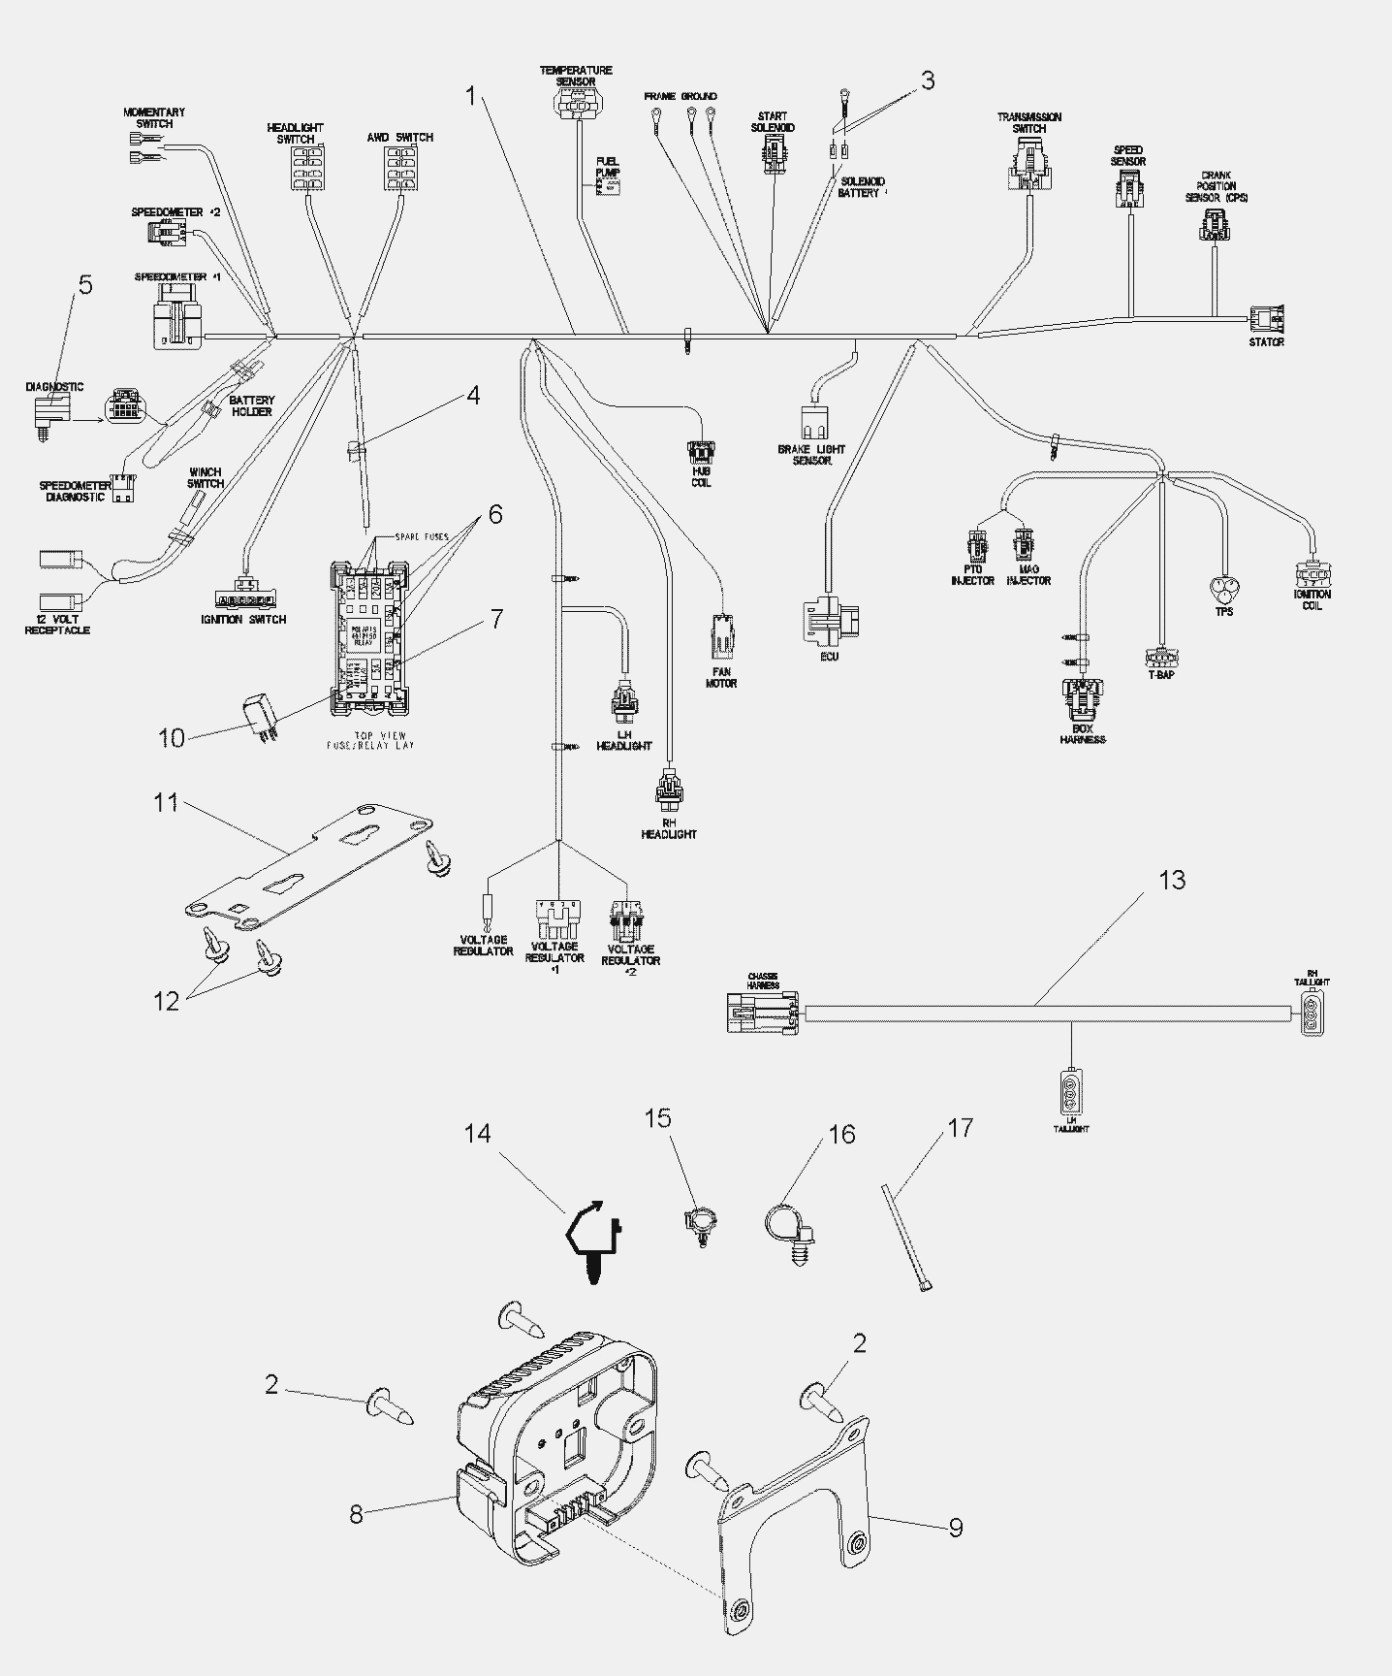 [DIAGRAM] Polaris Rzr 900 Parts Diagram FULL Version HD